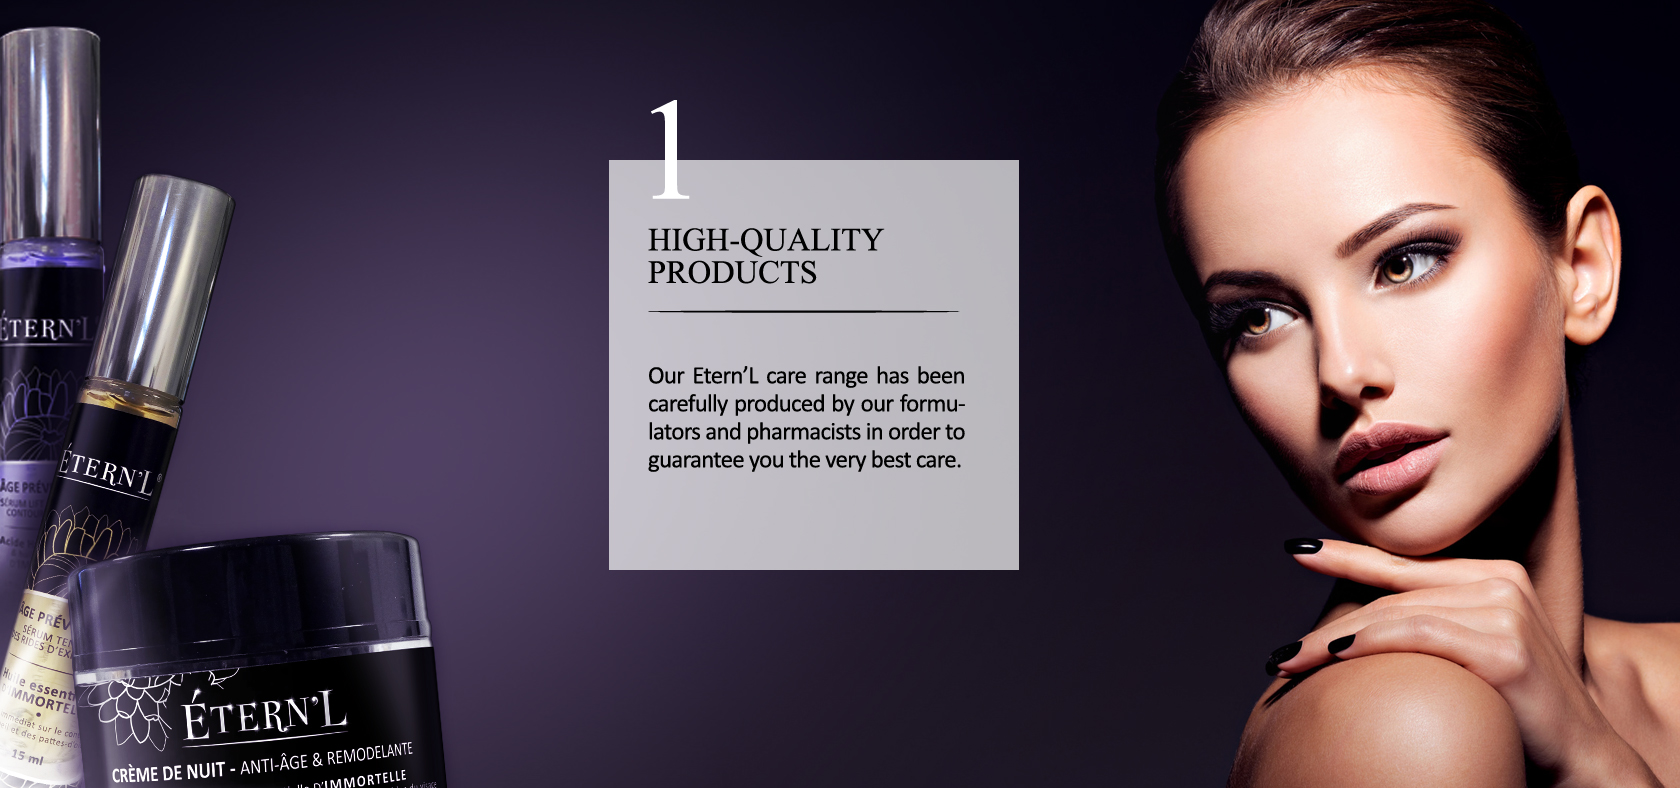 Éternel commitment #1: high-quality care products